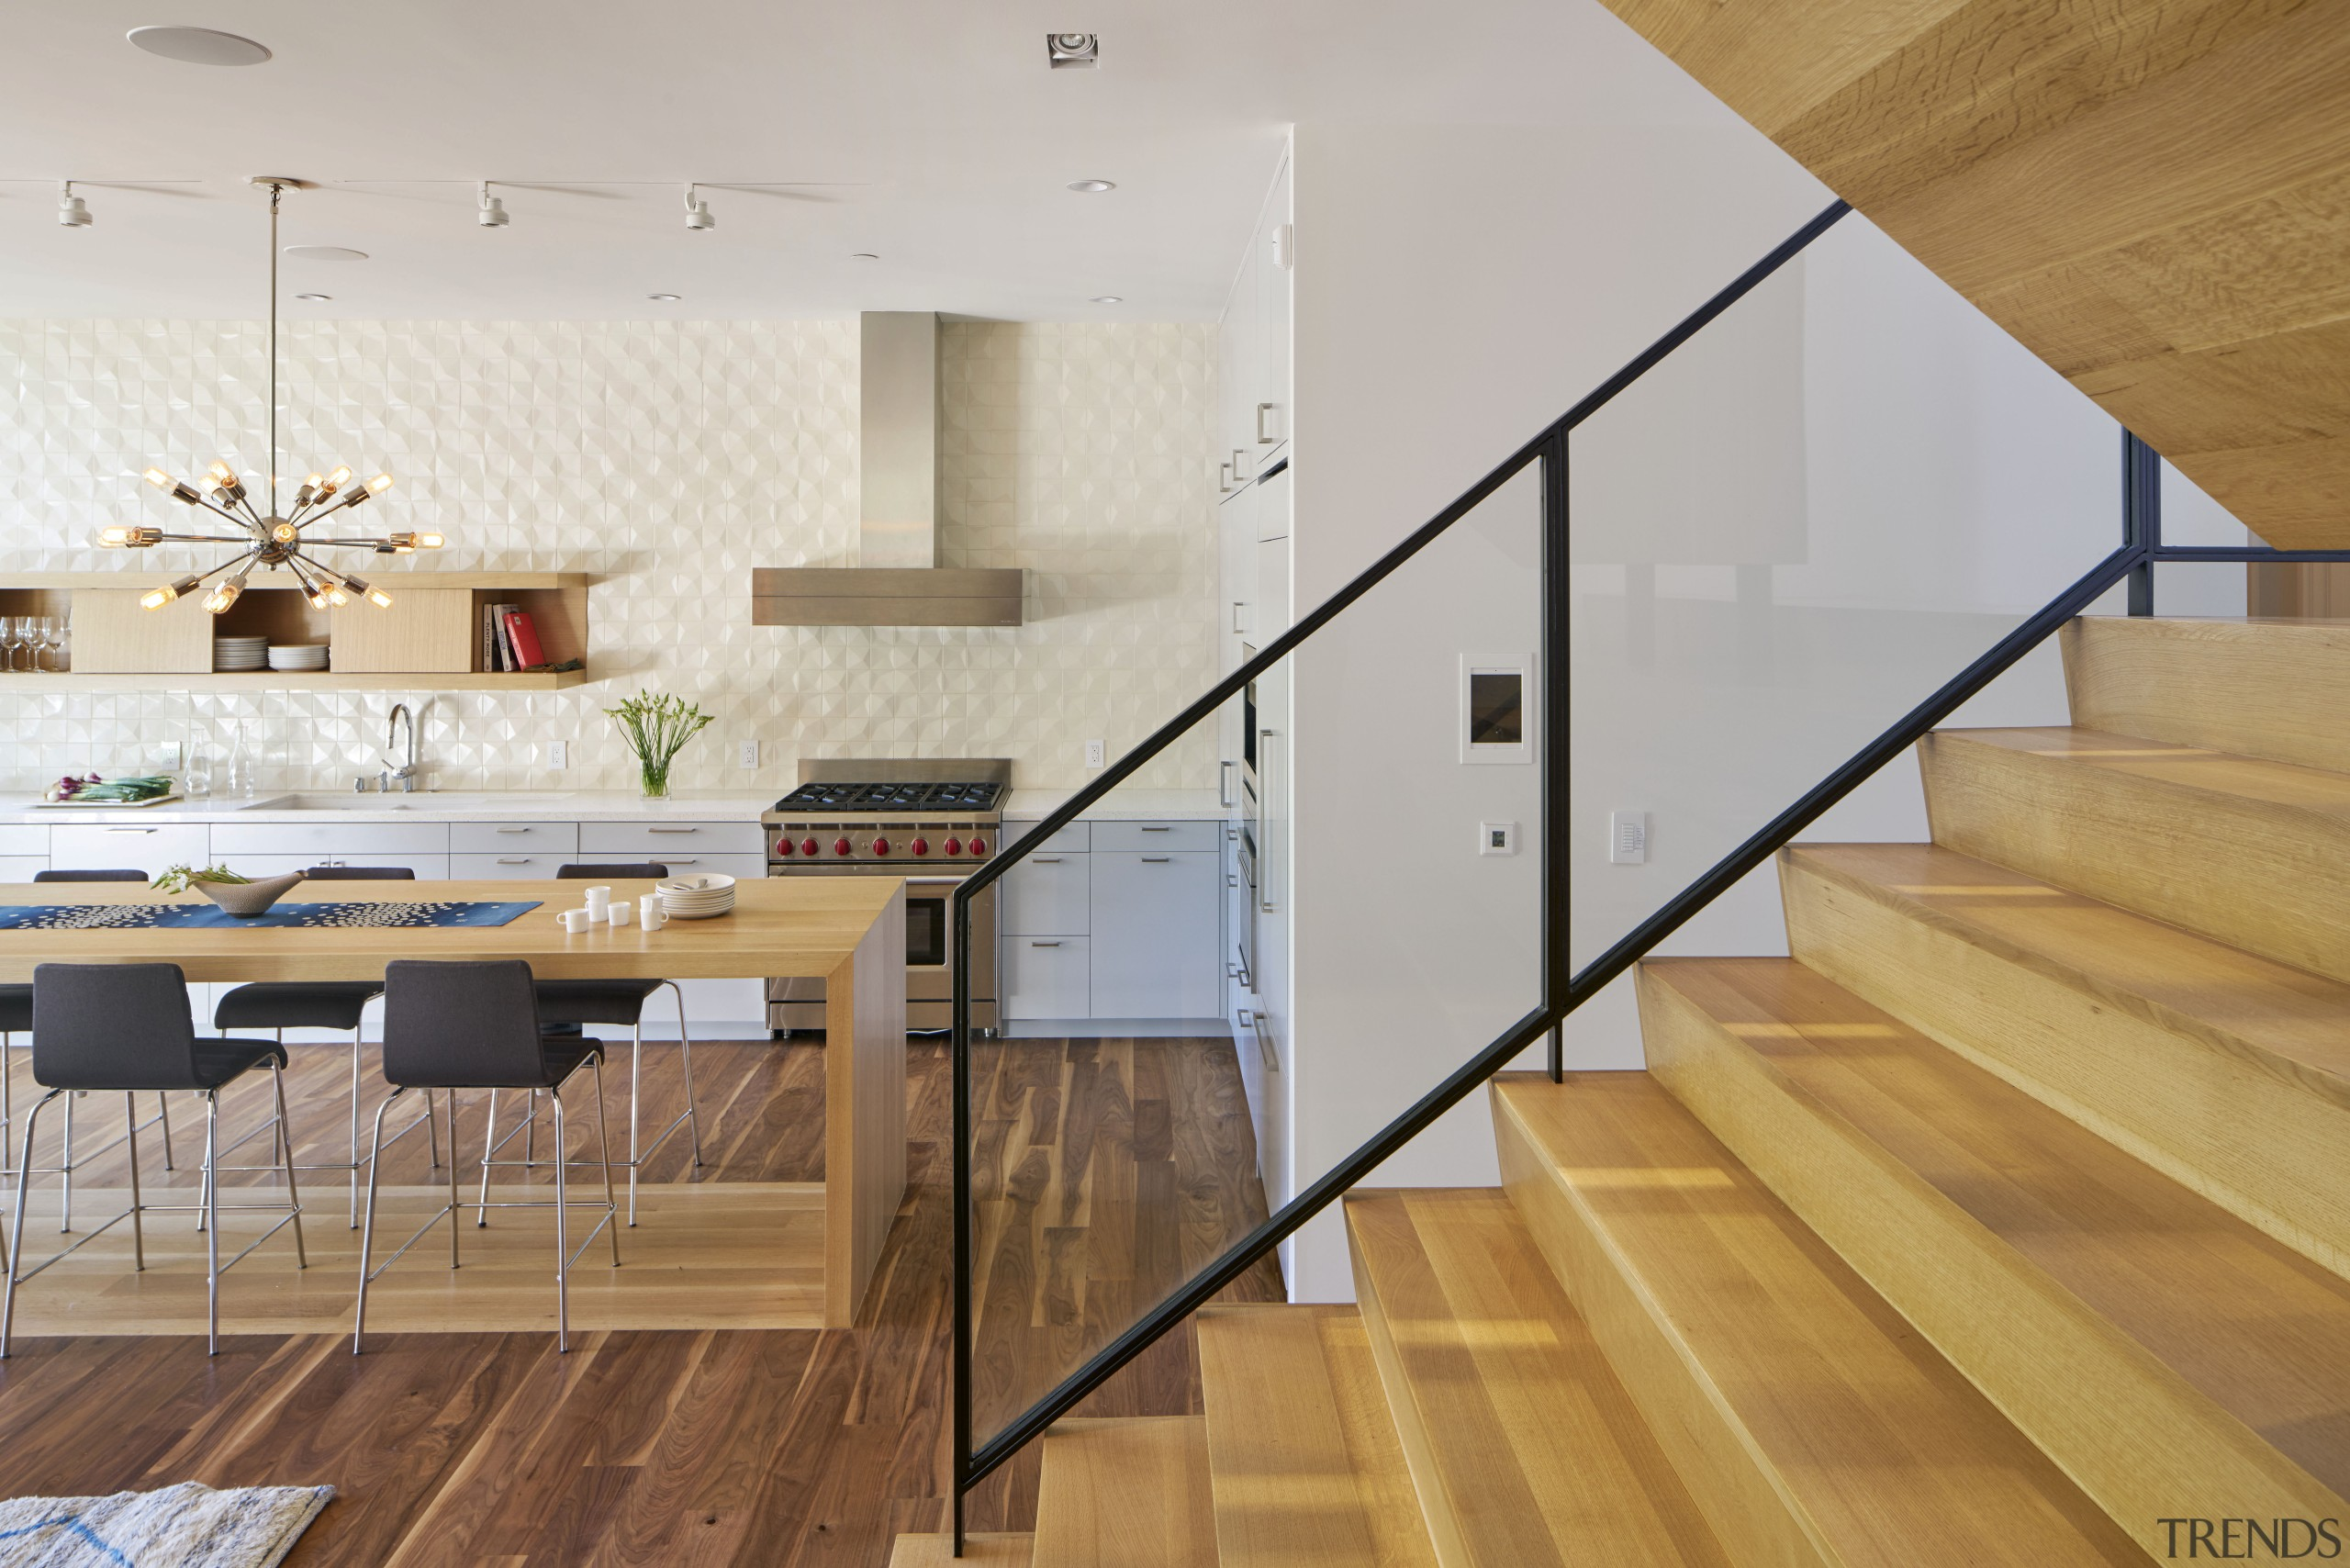 Installing shelving rather than upper cabinets results in architecture, ceiling, floor, flooring, handrail, hardwood, house, interior design, laminate flooring, loft, stairs, wall, wood, wood flooring, gray